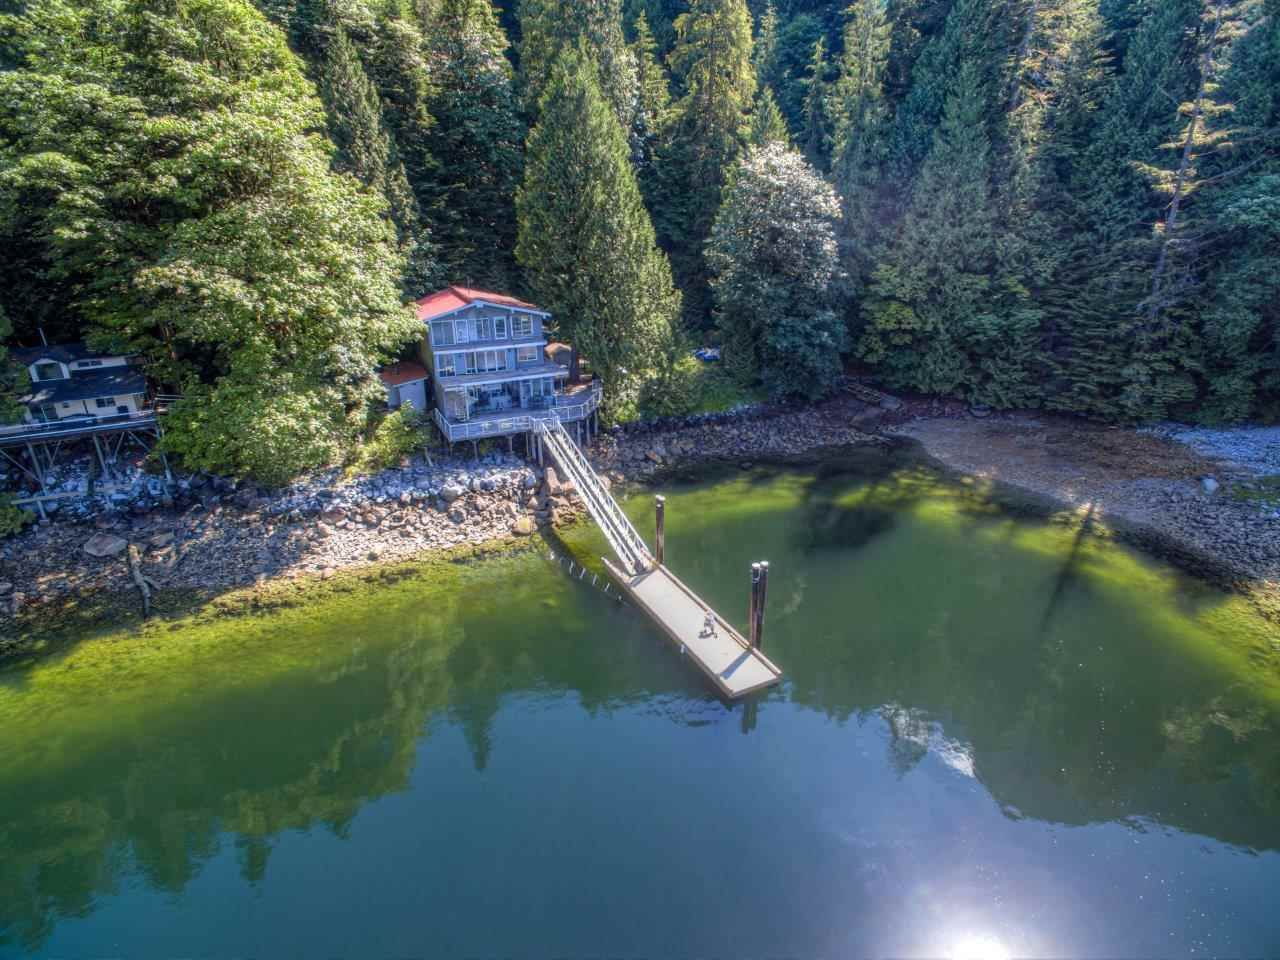 Main Photo: 20 E OF CROKER ISLAND in North Vancouver: Indian Arm House for sale : MLS®# R2471731